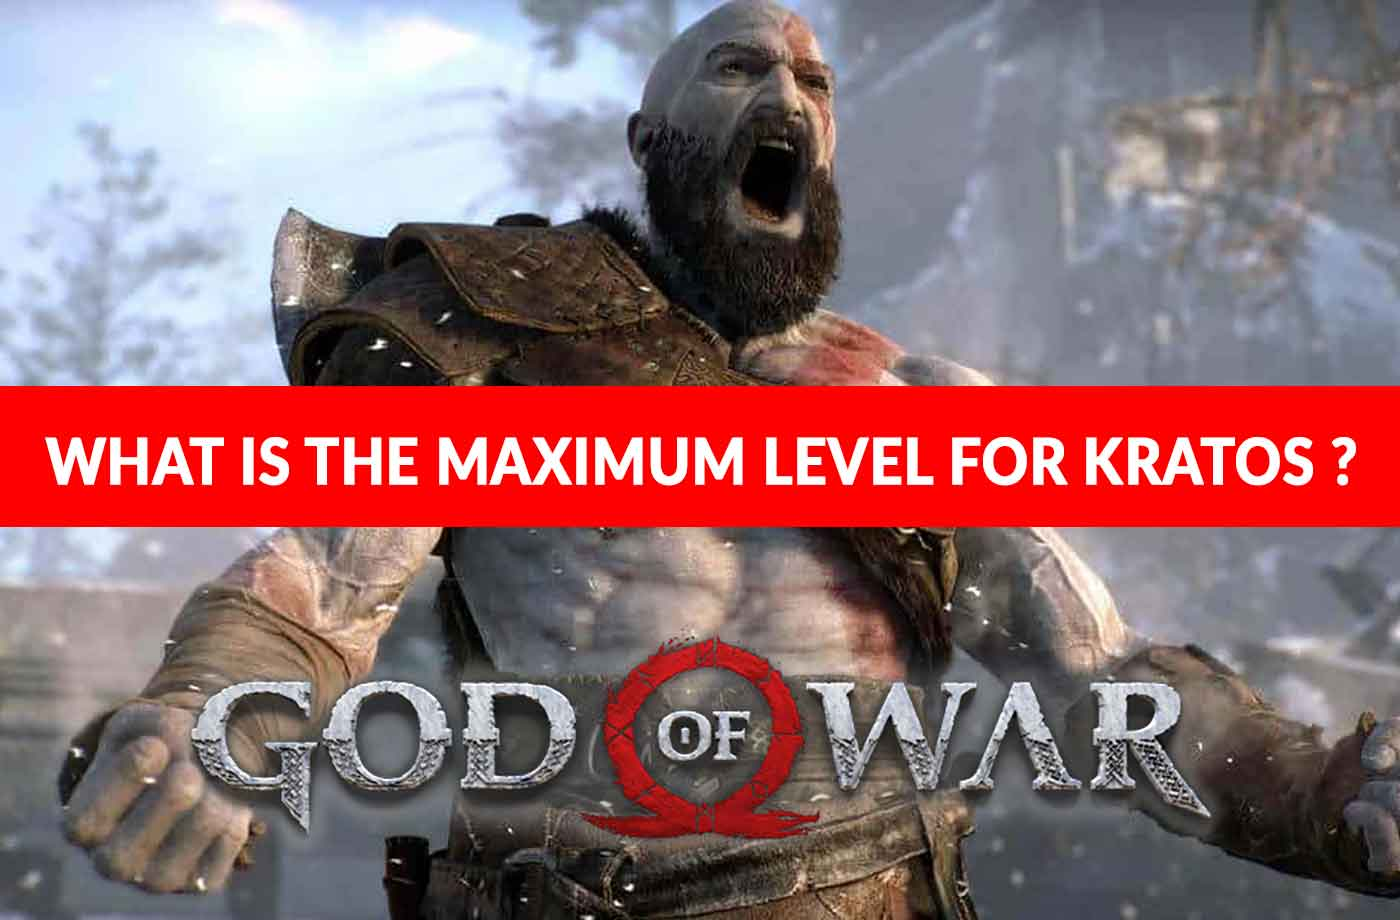 God Of War Ps4 What Is The Maximum Level Kratos Can Reach